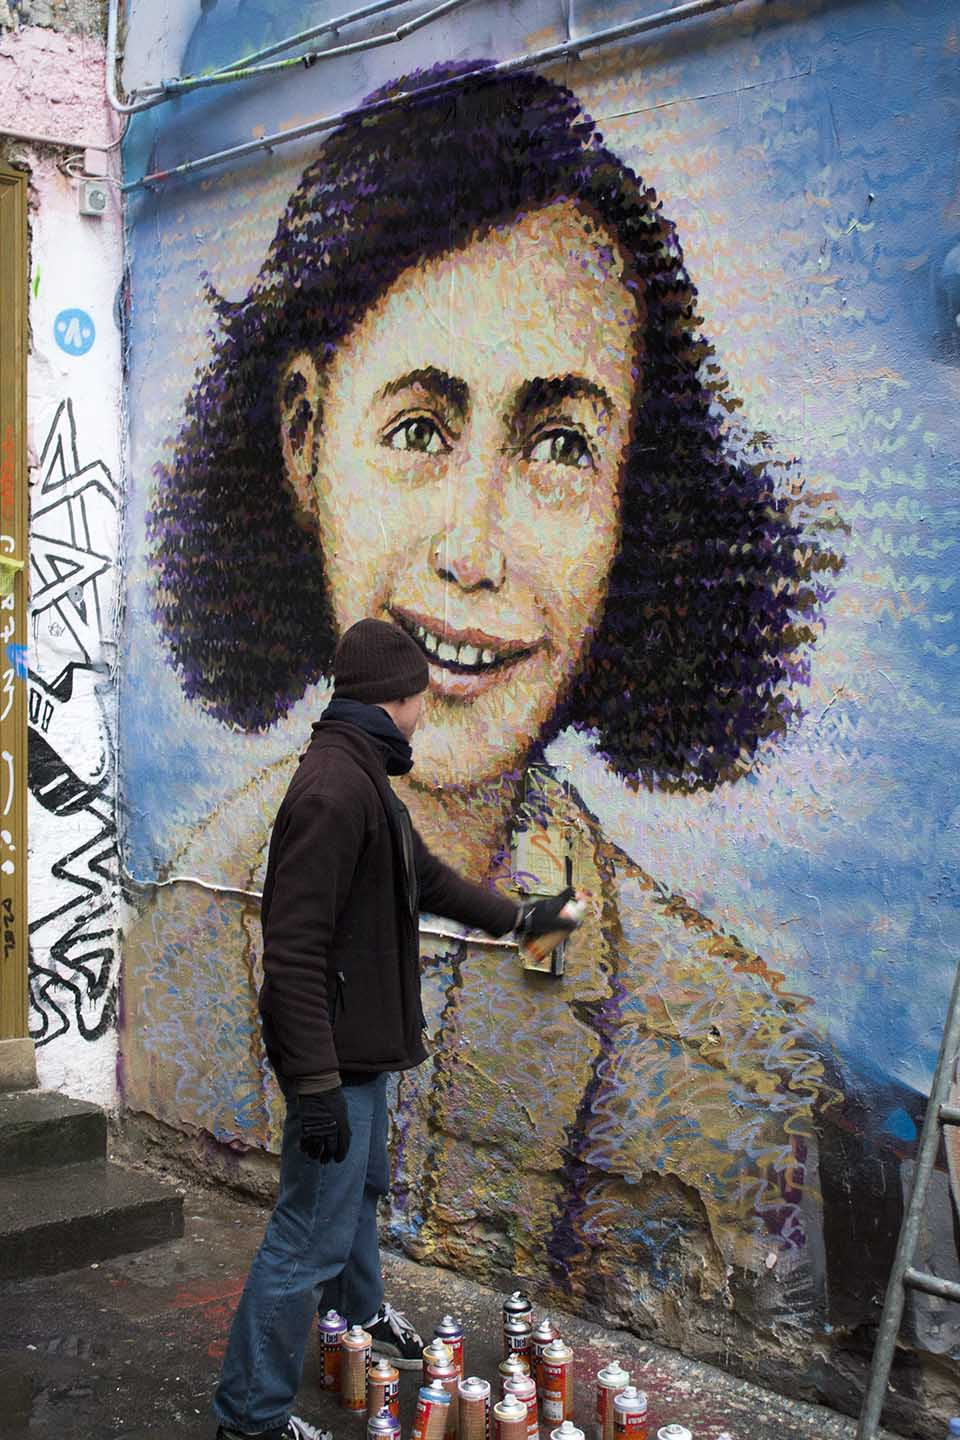 Street Artist Jimmy C. painted a mural of Anne Frank in Berlin